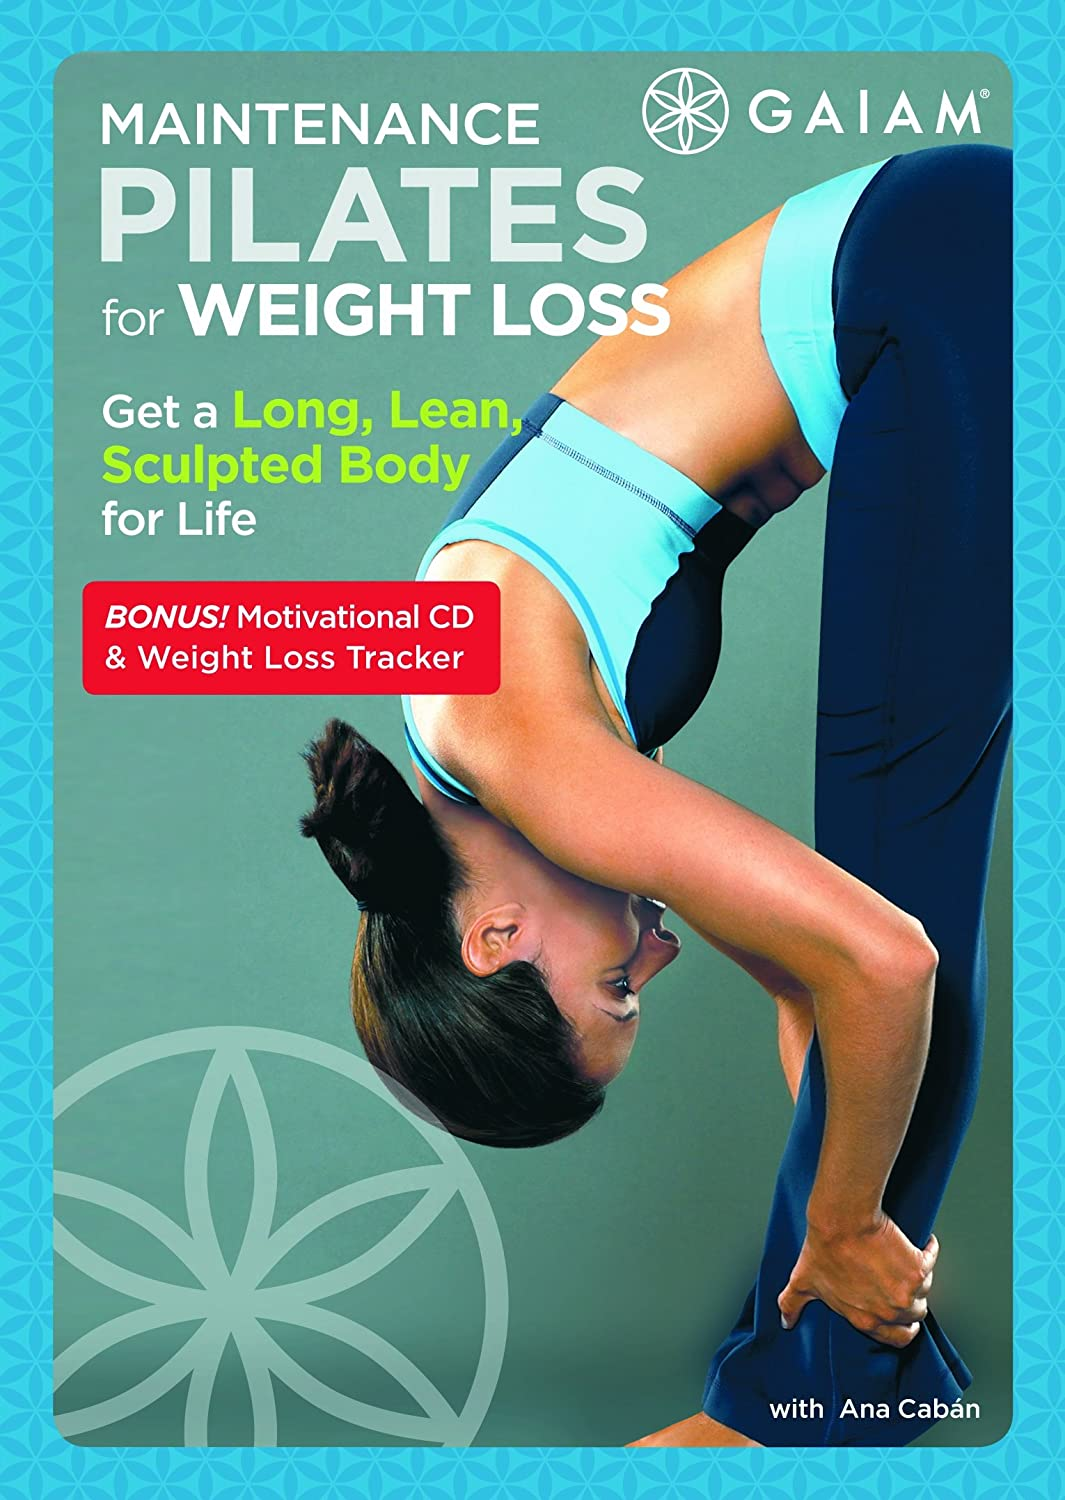 Maintenance Pilates for Weight Loss Ana Cabán Phil Scarpaci Gaiam 2222604